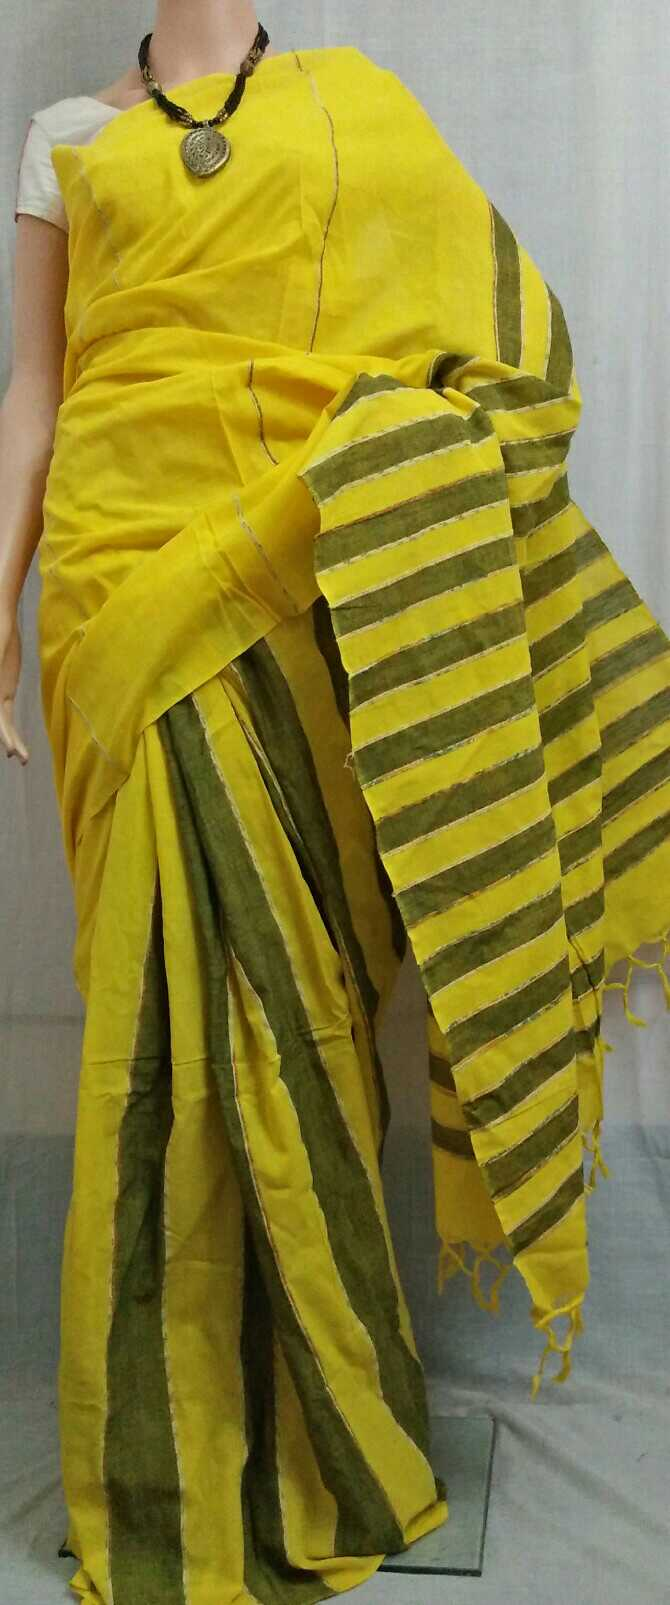 Image for Buy Handloom Plain Khes Saree with BP Online for Rs 970 on Vynam.in